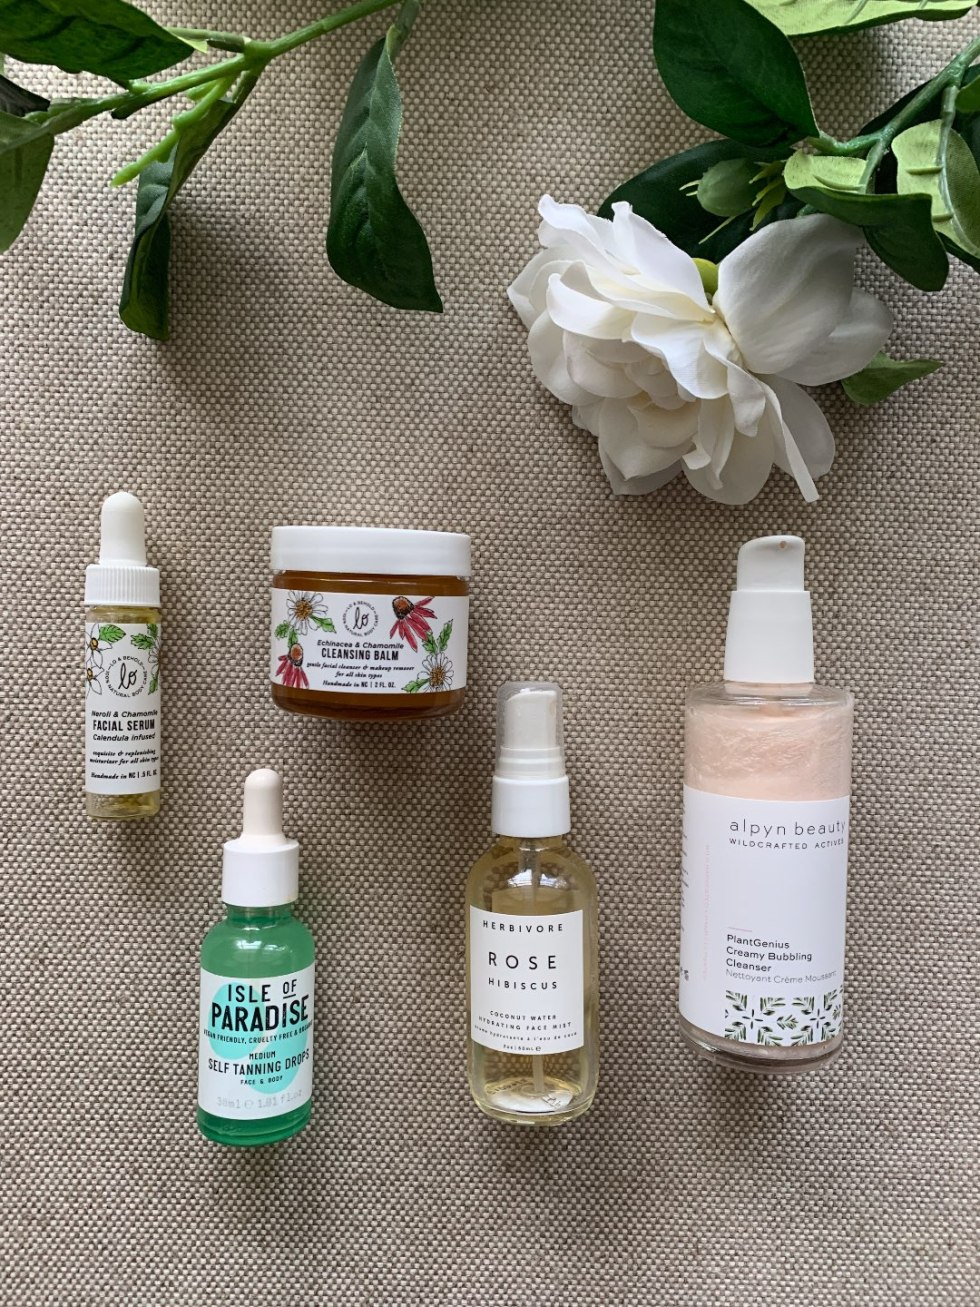 Fall Skincare Routine: Top 10 Products to Use this Season - I'm Fixin' To - @mbg0112 | Fall Skincare Routine: Top 10 Products to Use this Season by popular North Carolina beauty blog, I'm Fixin' To: image of Lo & Behold Cleansing Balm, Alpyn Beauty Wildcrafted Creamy Bubbling Cleanser, Herbivore Rose Water Spray, Lo & Behold Neroli & Chamomile Facial Serum, and Isle of Paradise Self Tanning Drops.